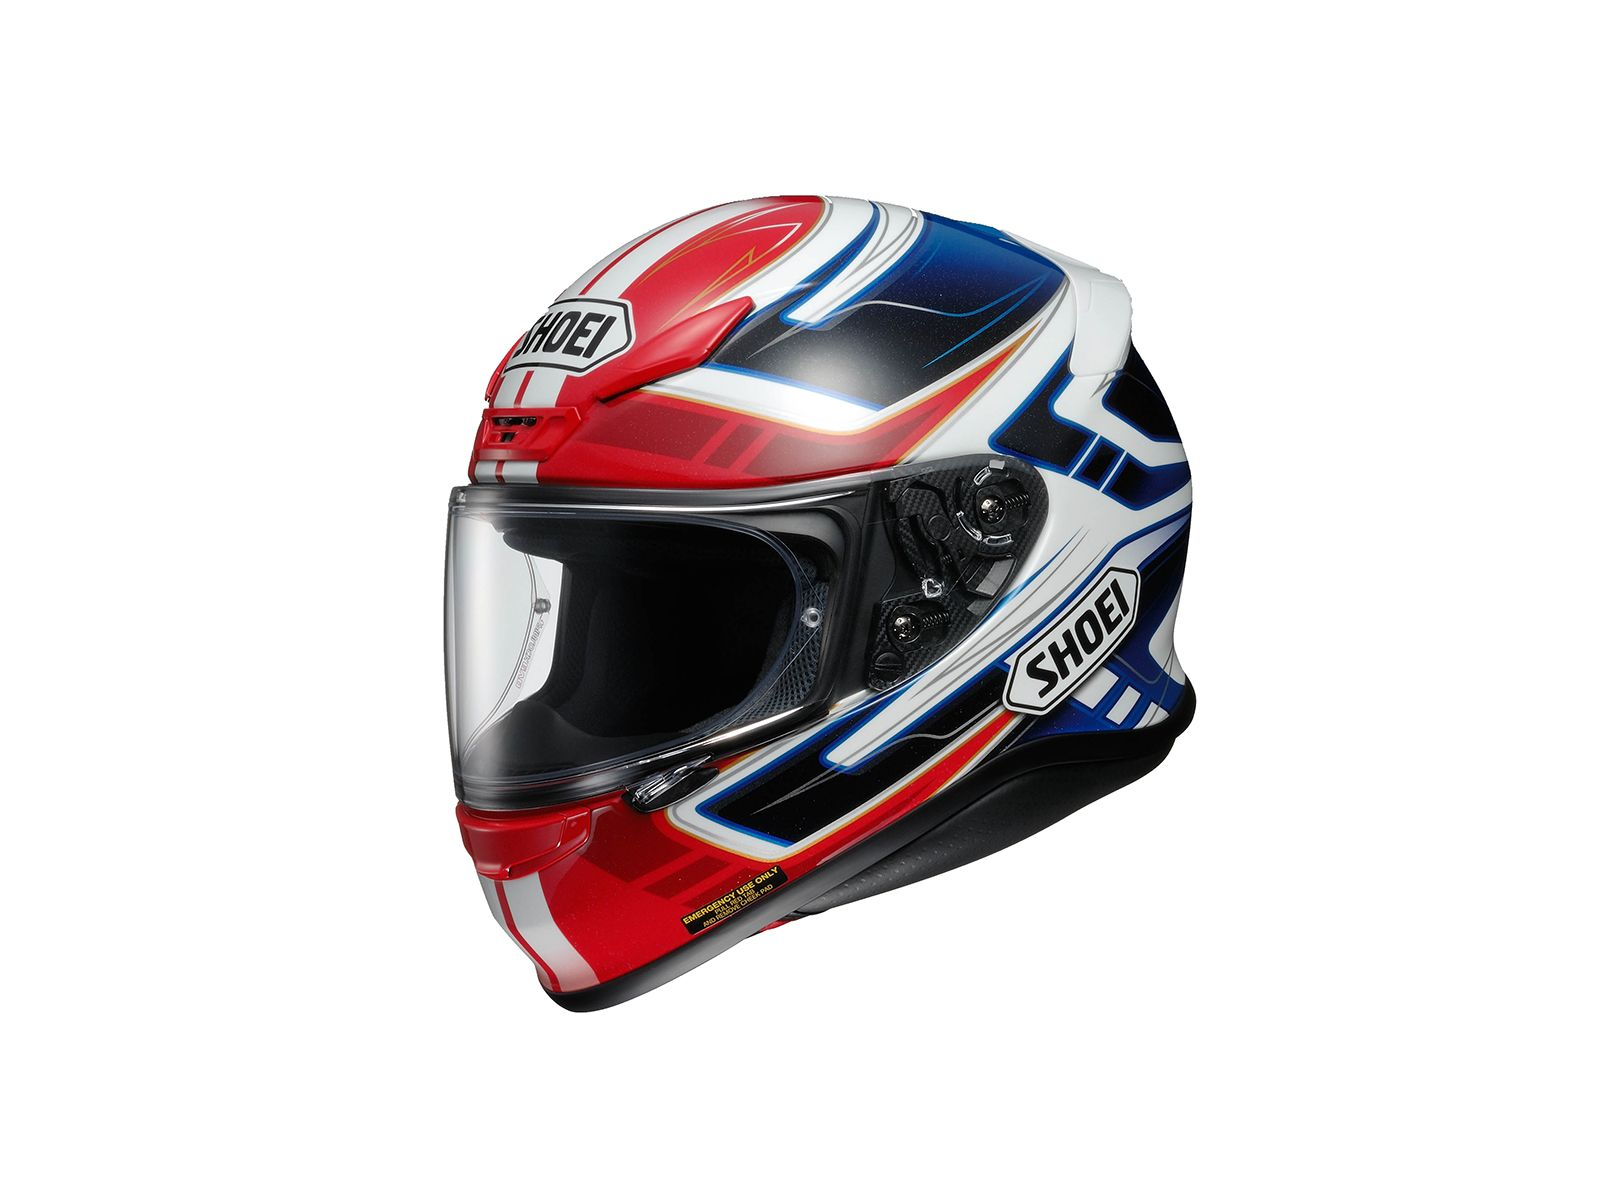 casque int gral shoei gt air moto scooter marseille occasion moto. Black Bedroom Furniture Sets. Home Design Ideas